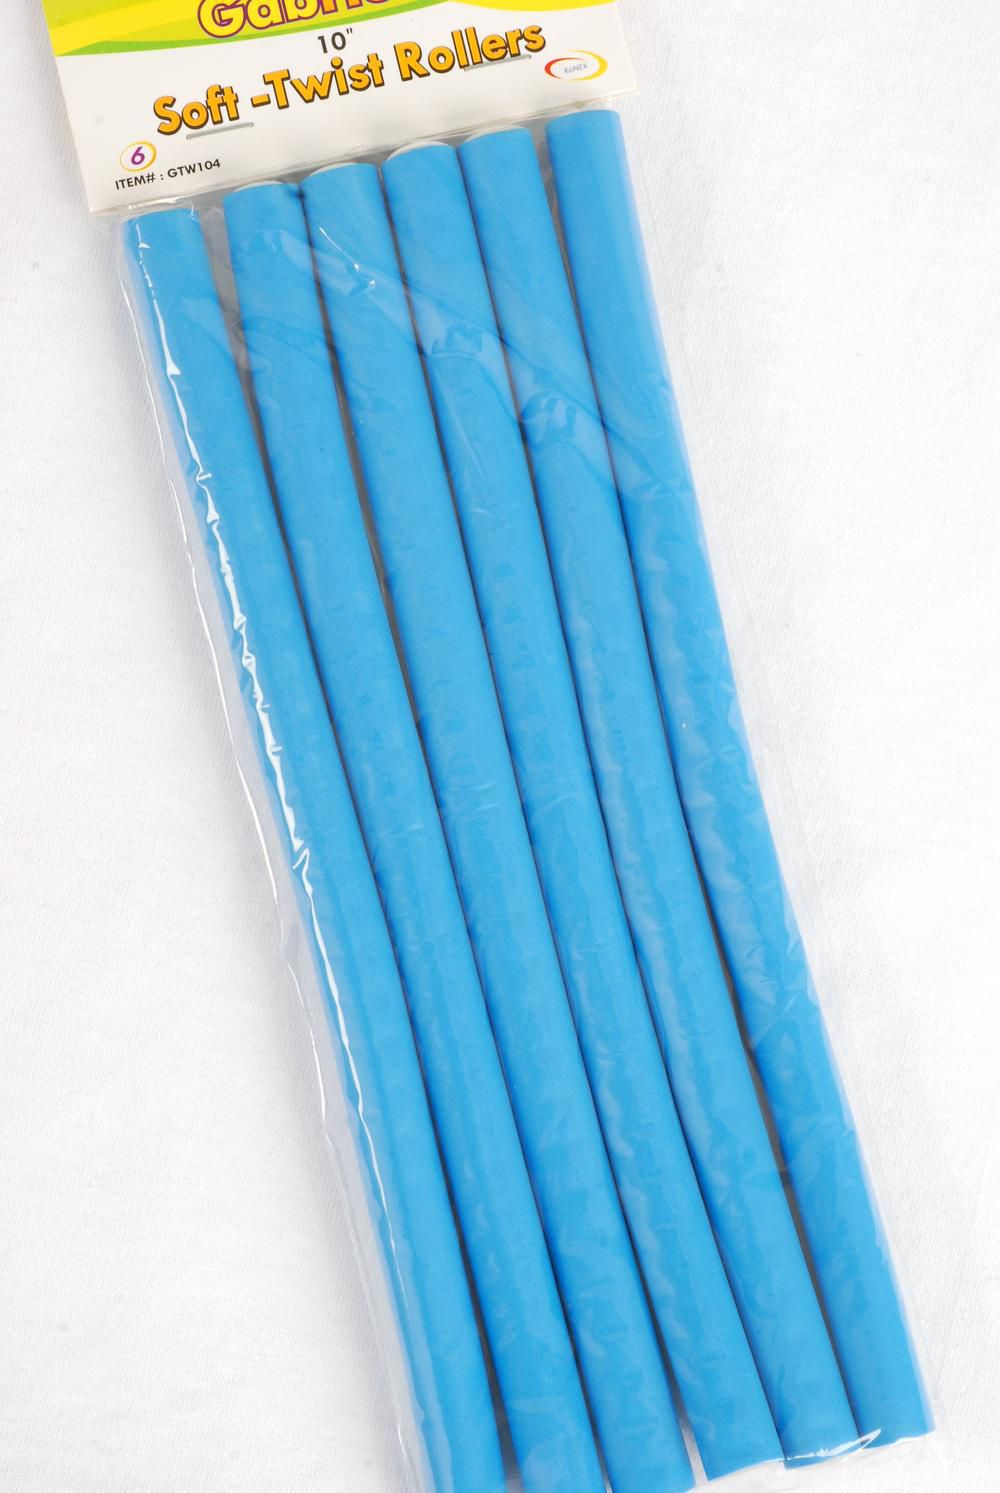 "Long Rubber Rods/DZ 10"" Long,Each Pack Have 6 pcs,12 Pack= Dozen,Choose Colors"